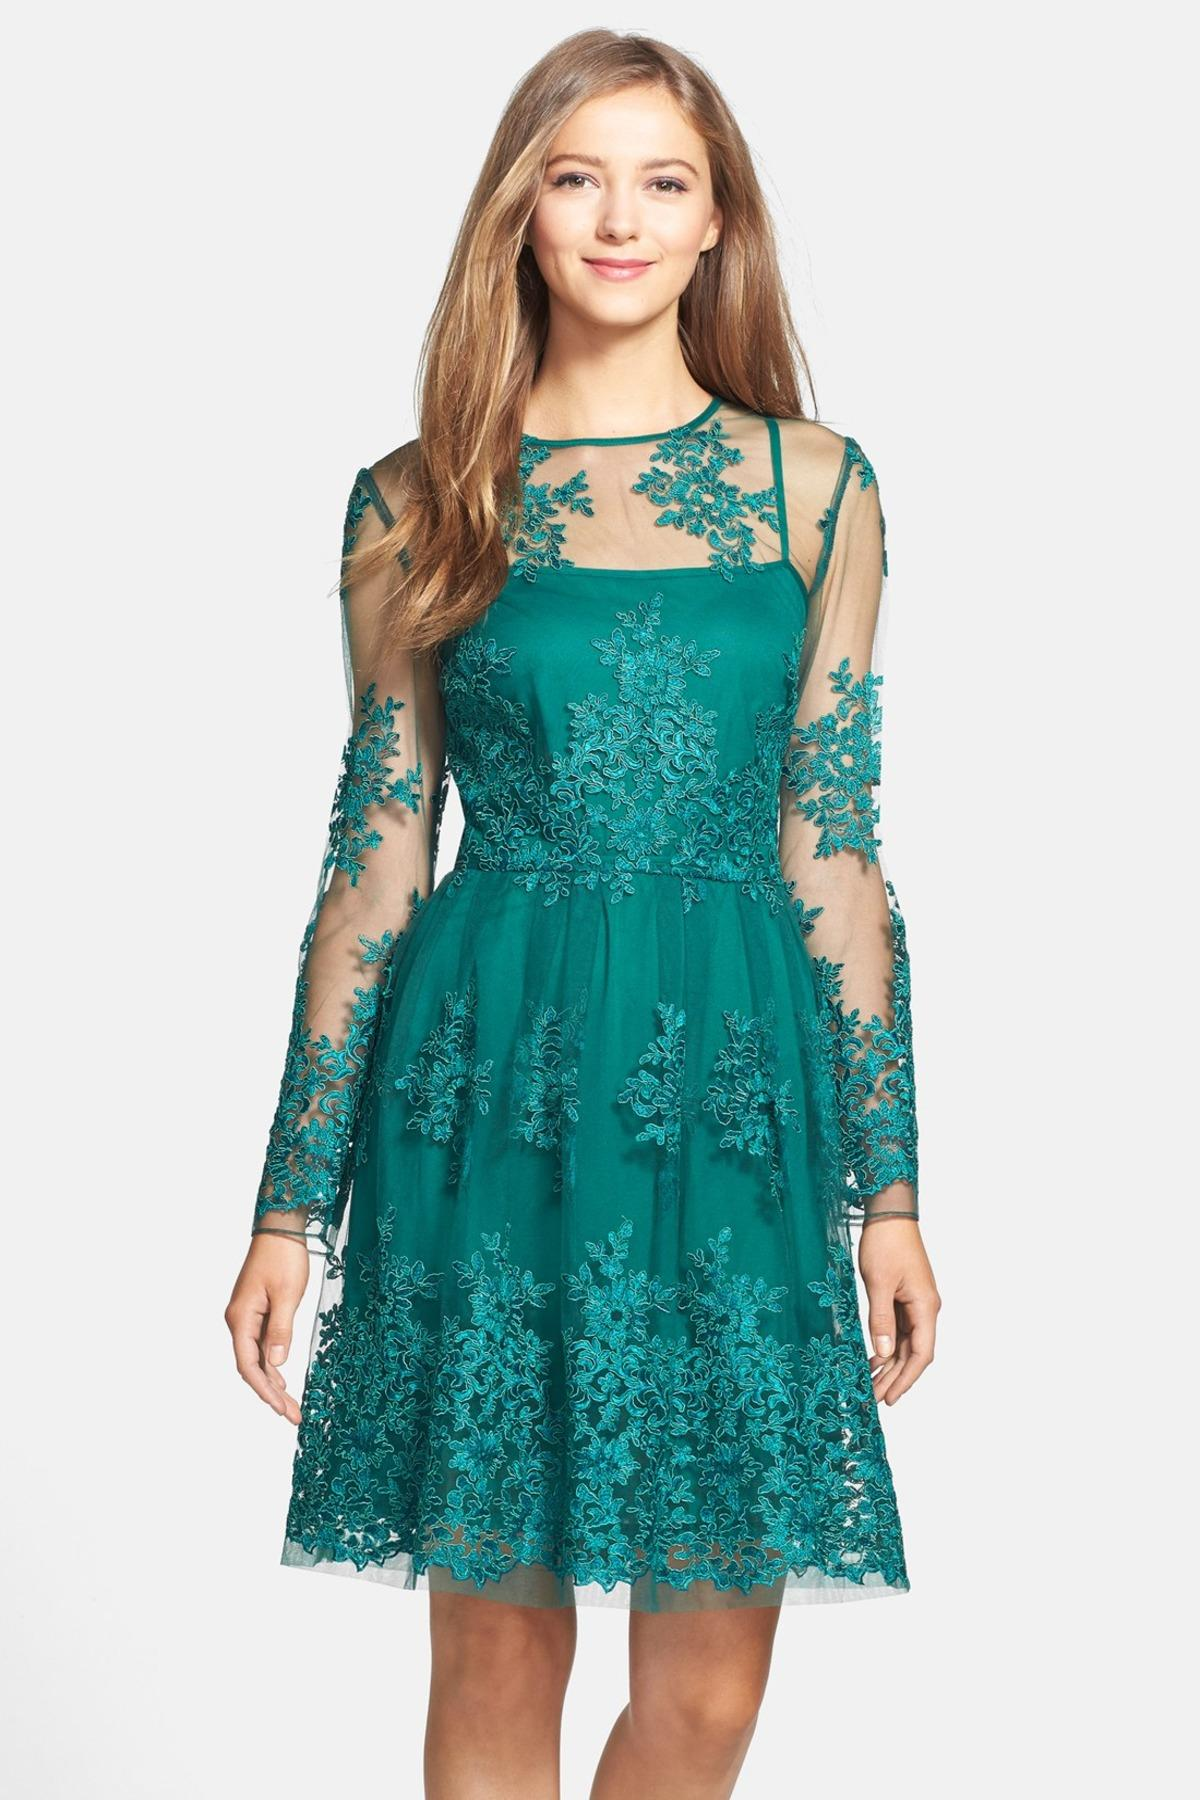 Blue Prom Dresses Nordstrom Rack – fashion dresses